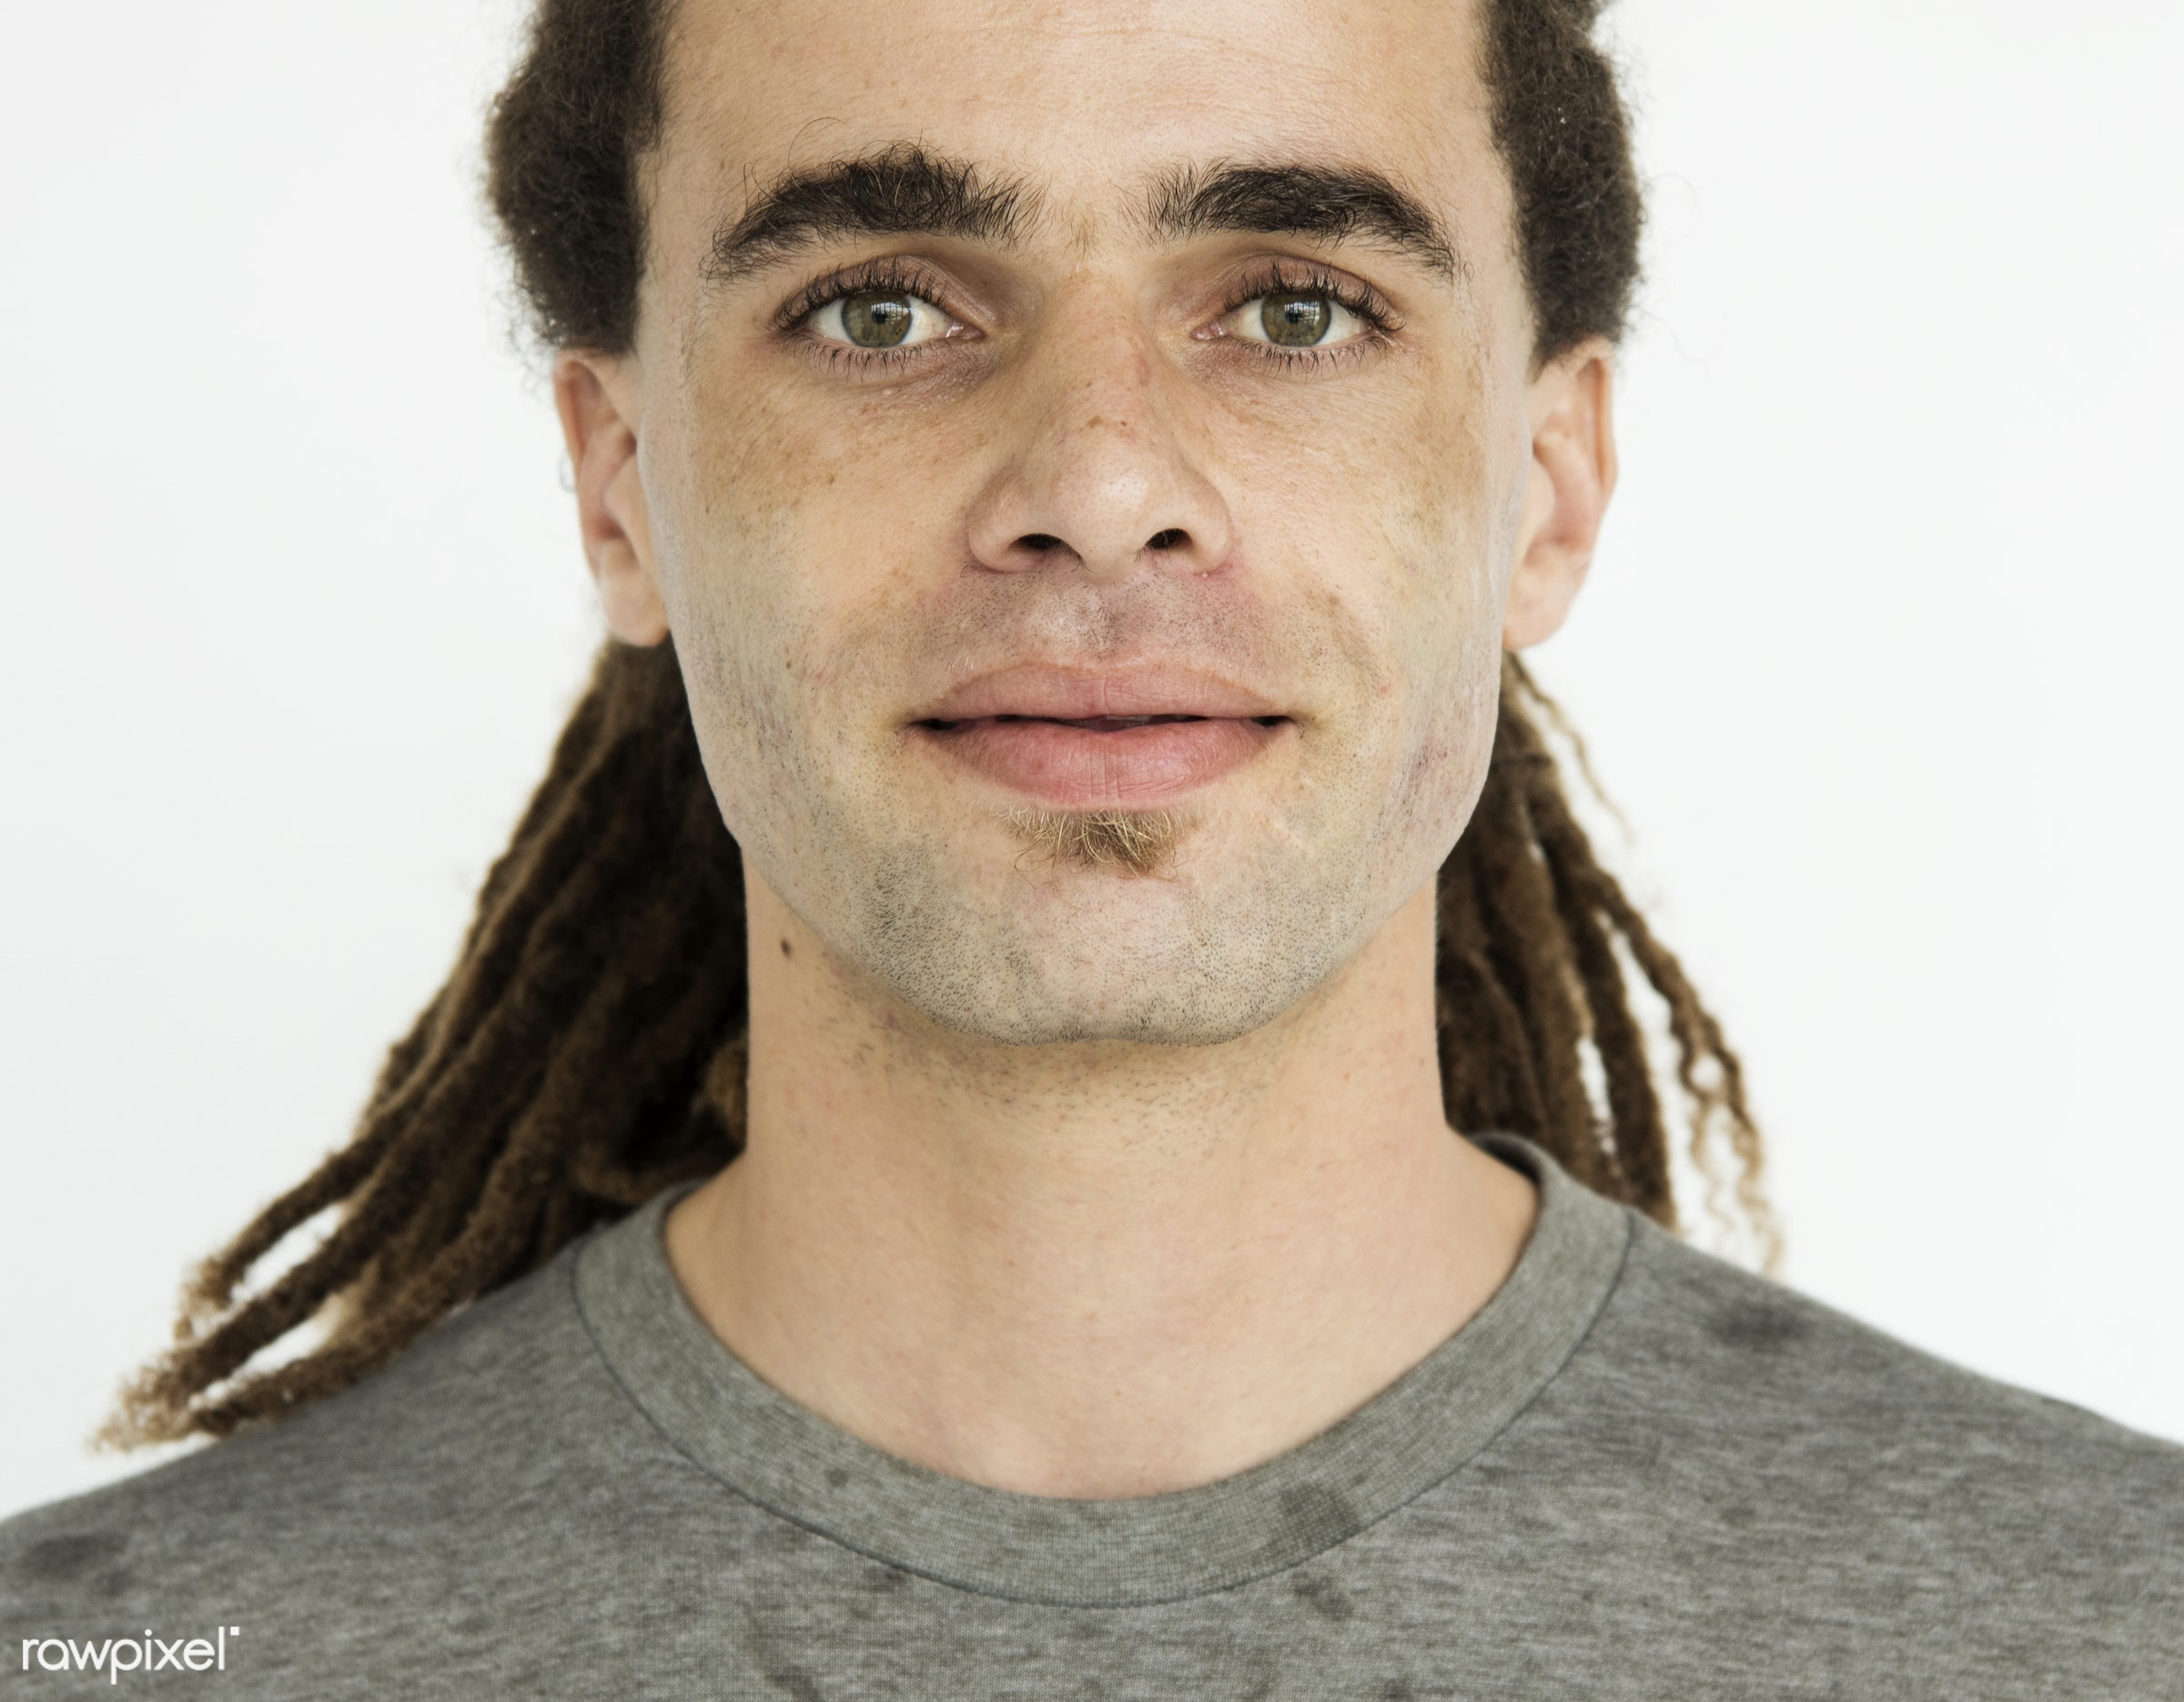 studio, expression, face, people, caucasian, solo, casual, serious, alone, man, isolated, blank, dreadlocks, guy, male,...